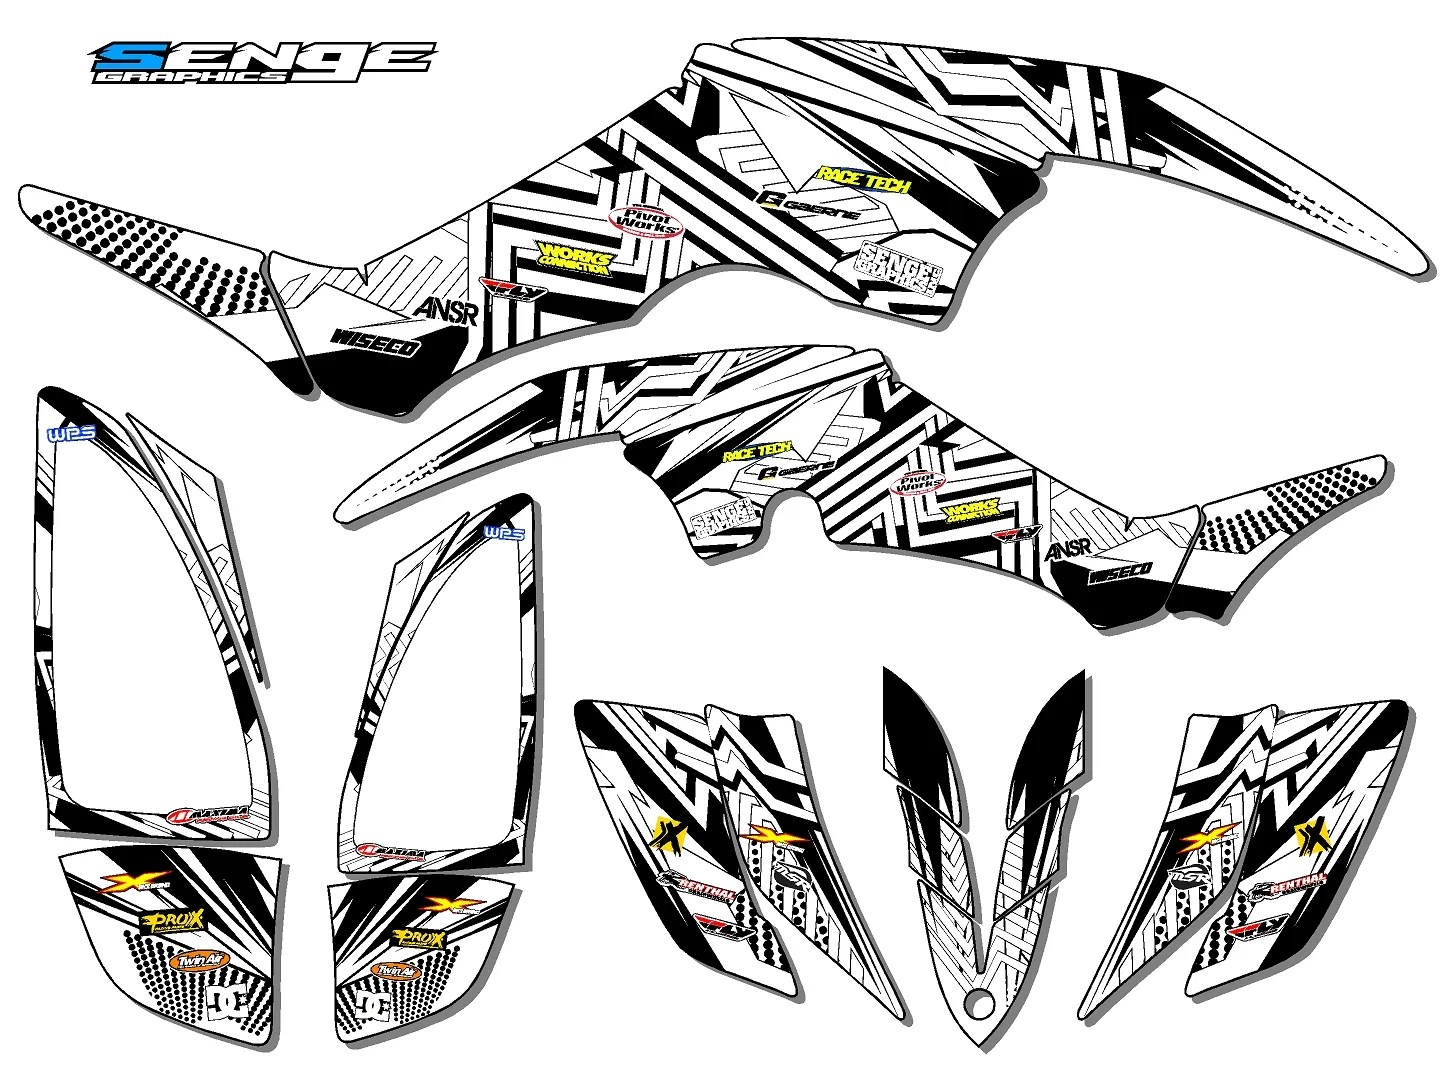 RAPTOR 350 RAPTOR350 YAMAHA GRAPHICS KIT DECO STICKERS ATV